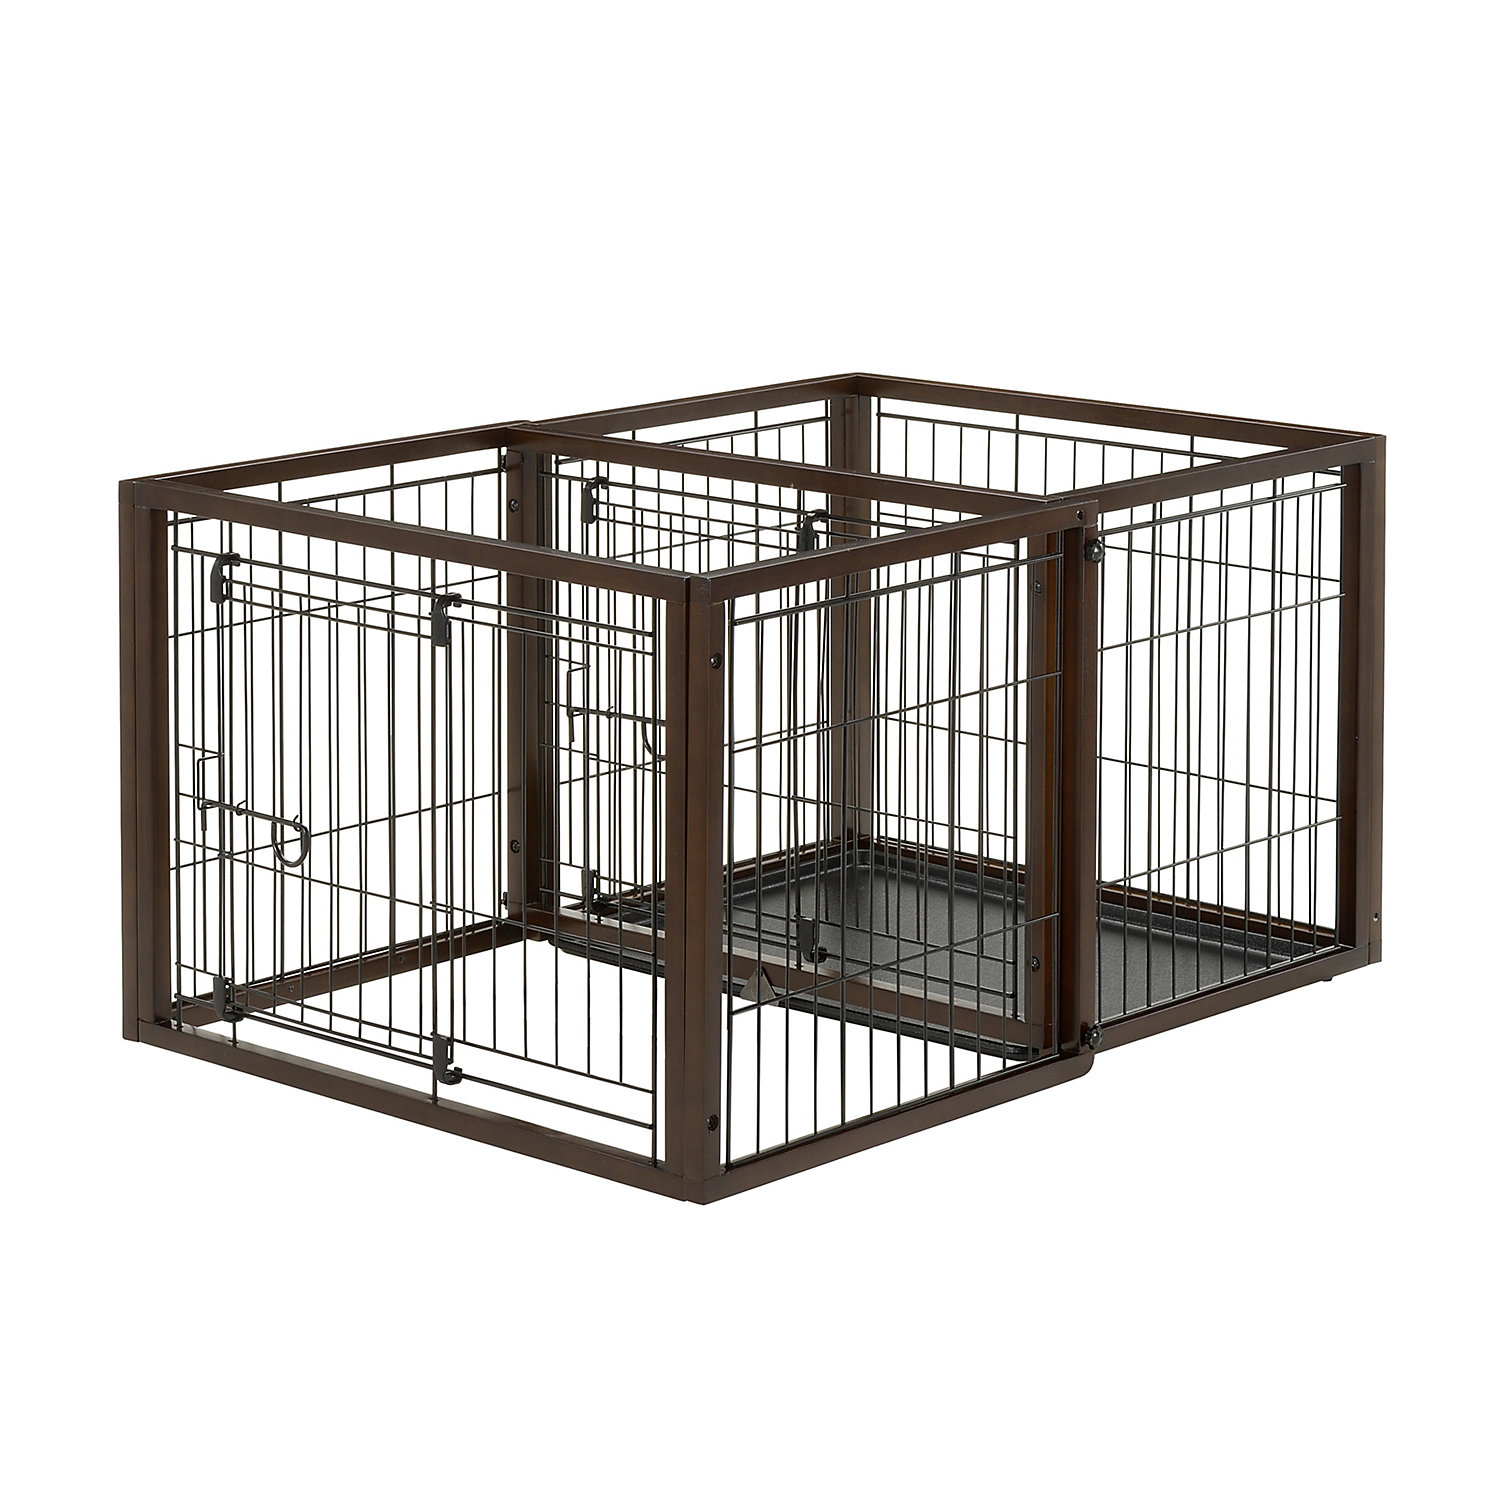 Richell Flip To Play Pet Crate 43.7 x 24.4 x 31.9 Small Brown